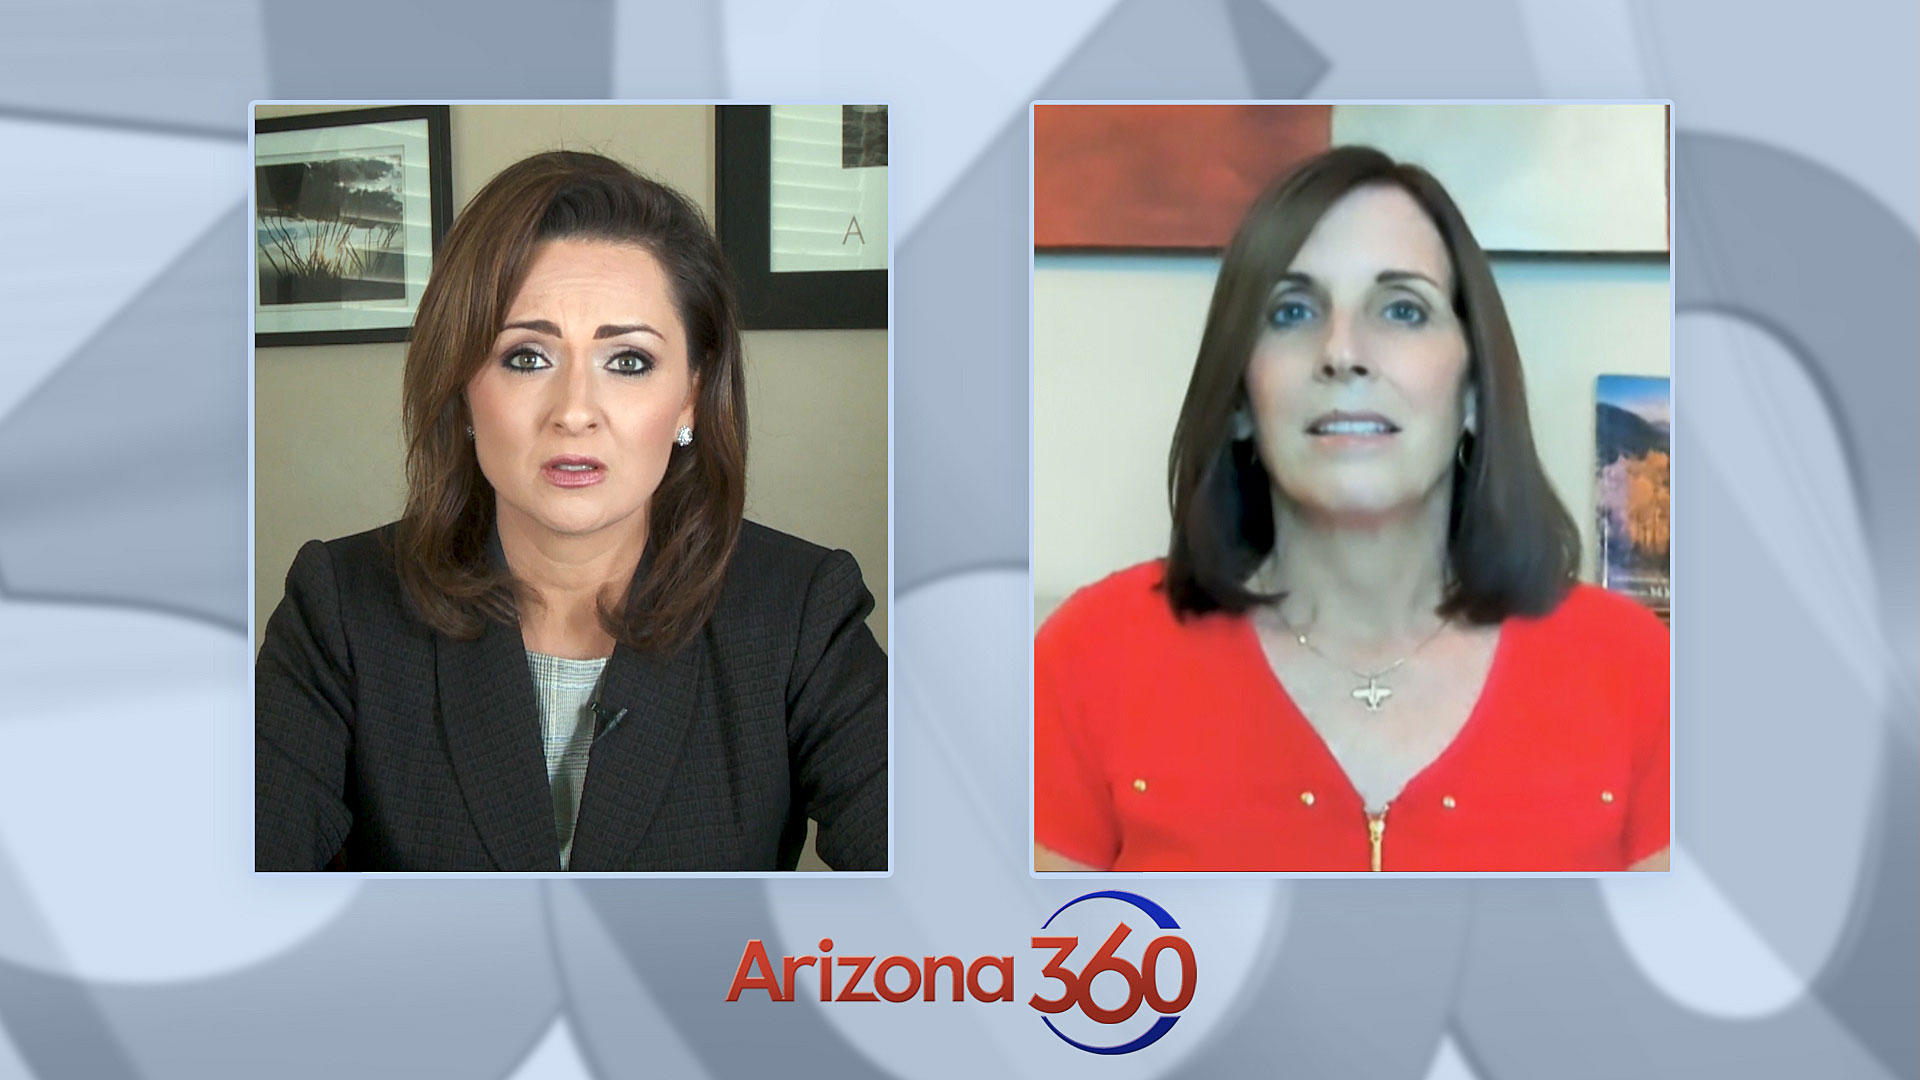 Arizona 360 host Lorraine Rivera interviews Republican Sen. Martha McSally on Sept. 28, 2020.